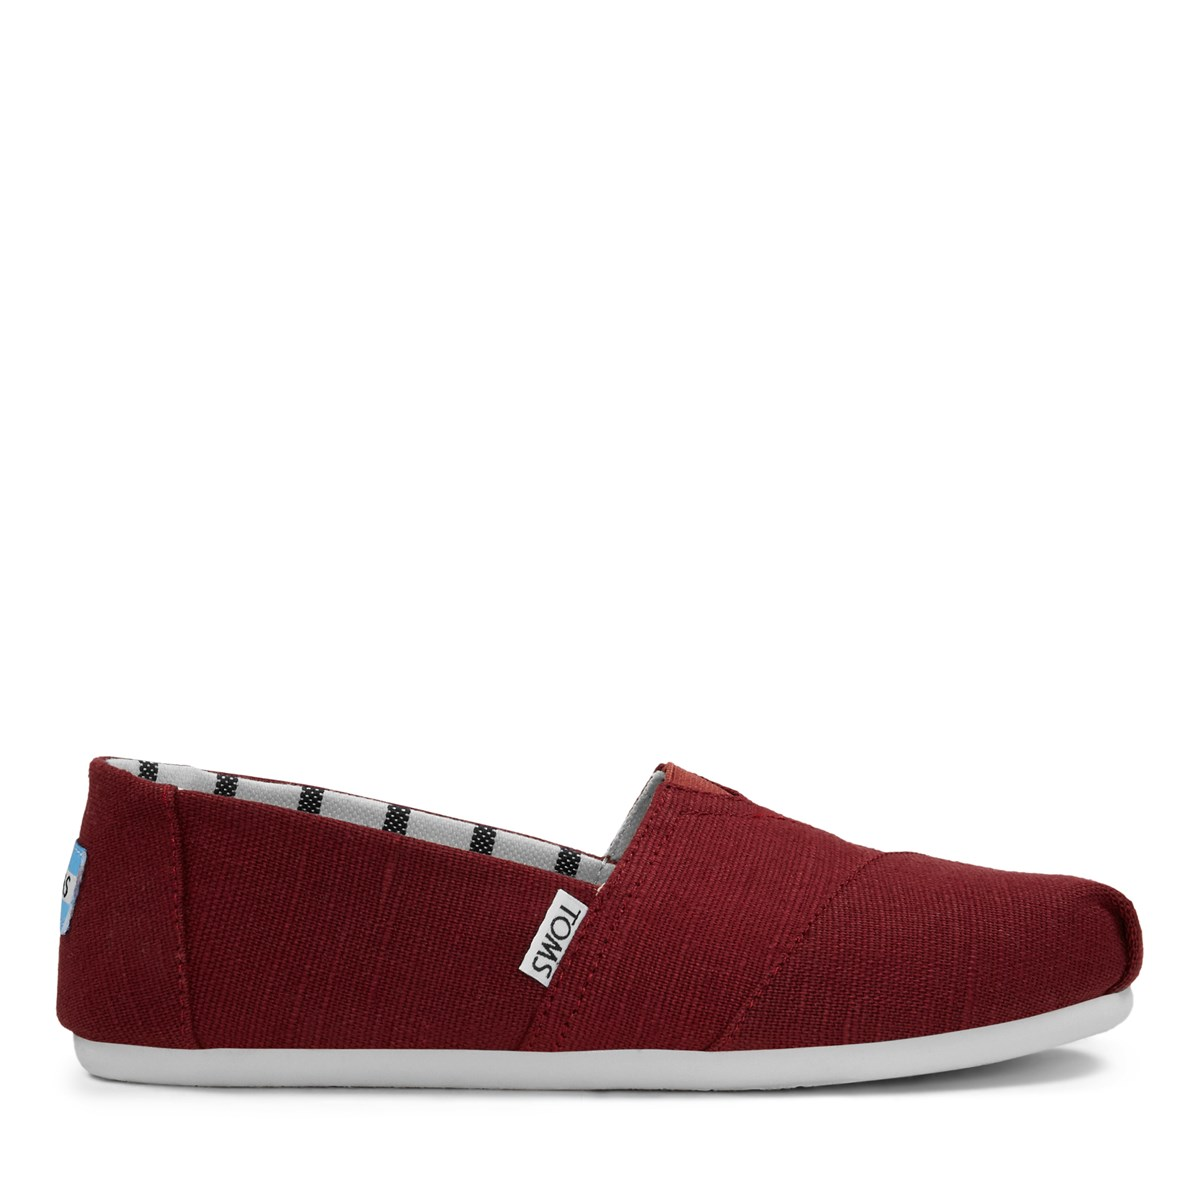 Women's Alpargata Slip-Ons in Cherry Red